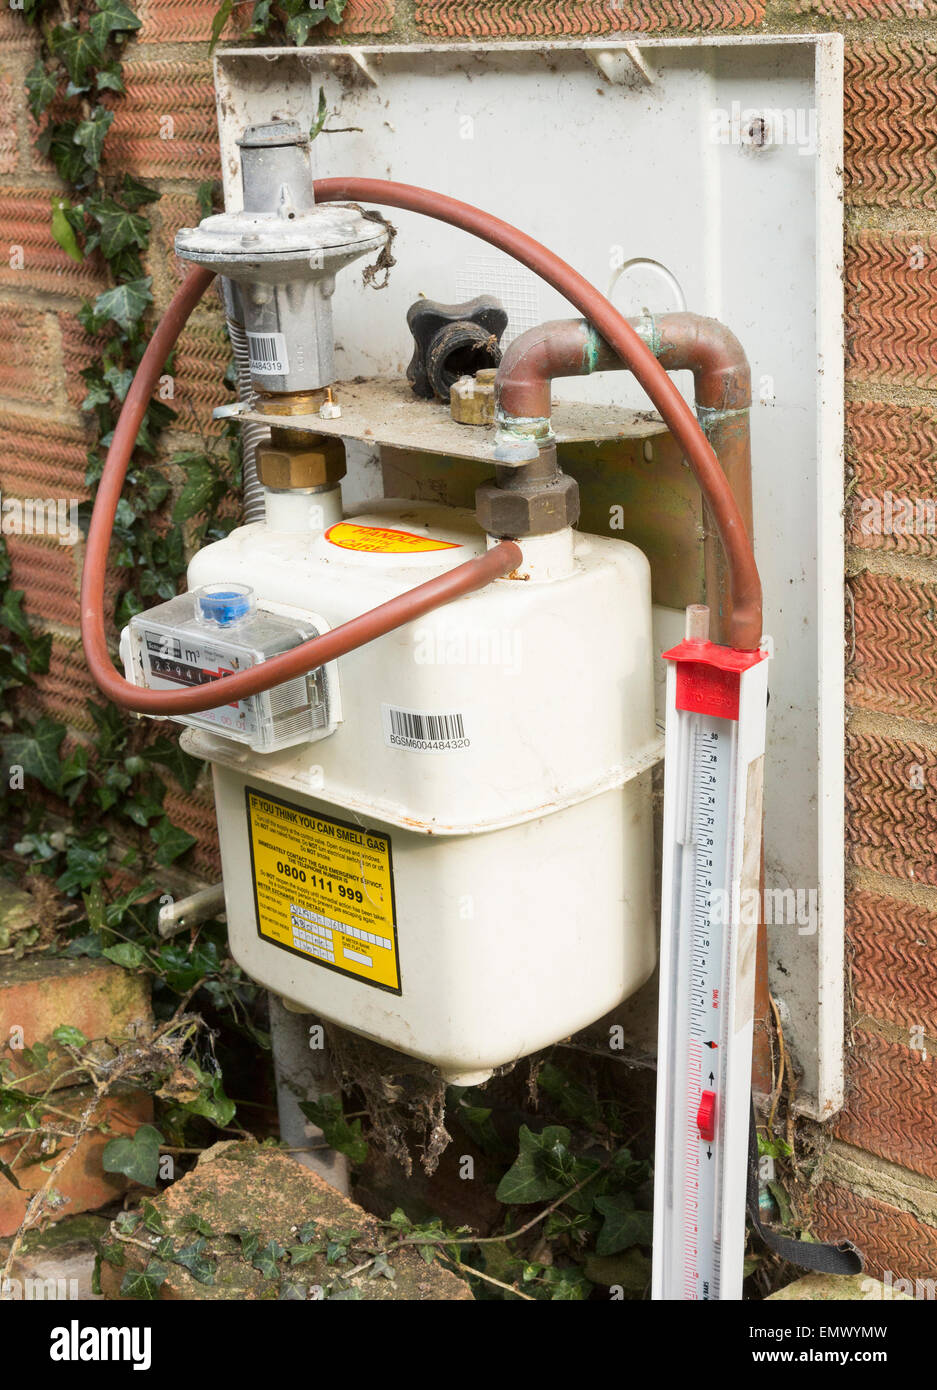 gas meter leak test using manometer - Stock Image